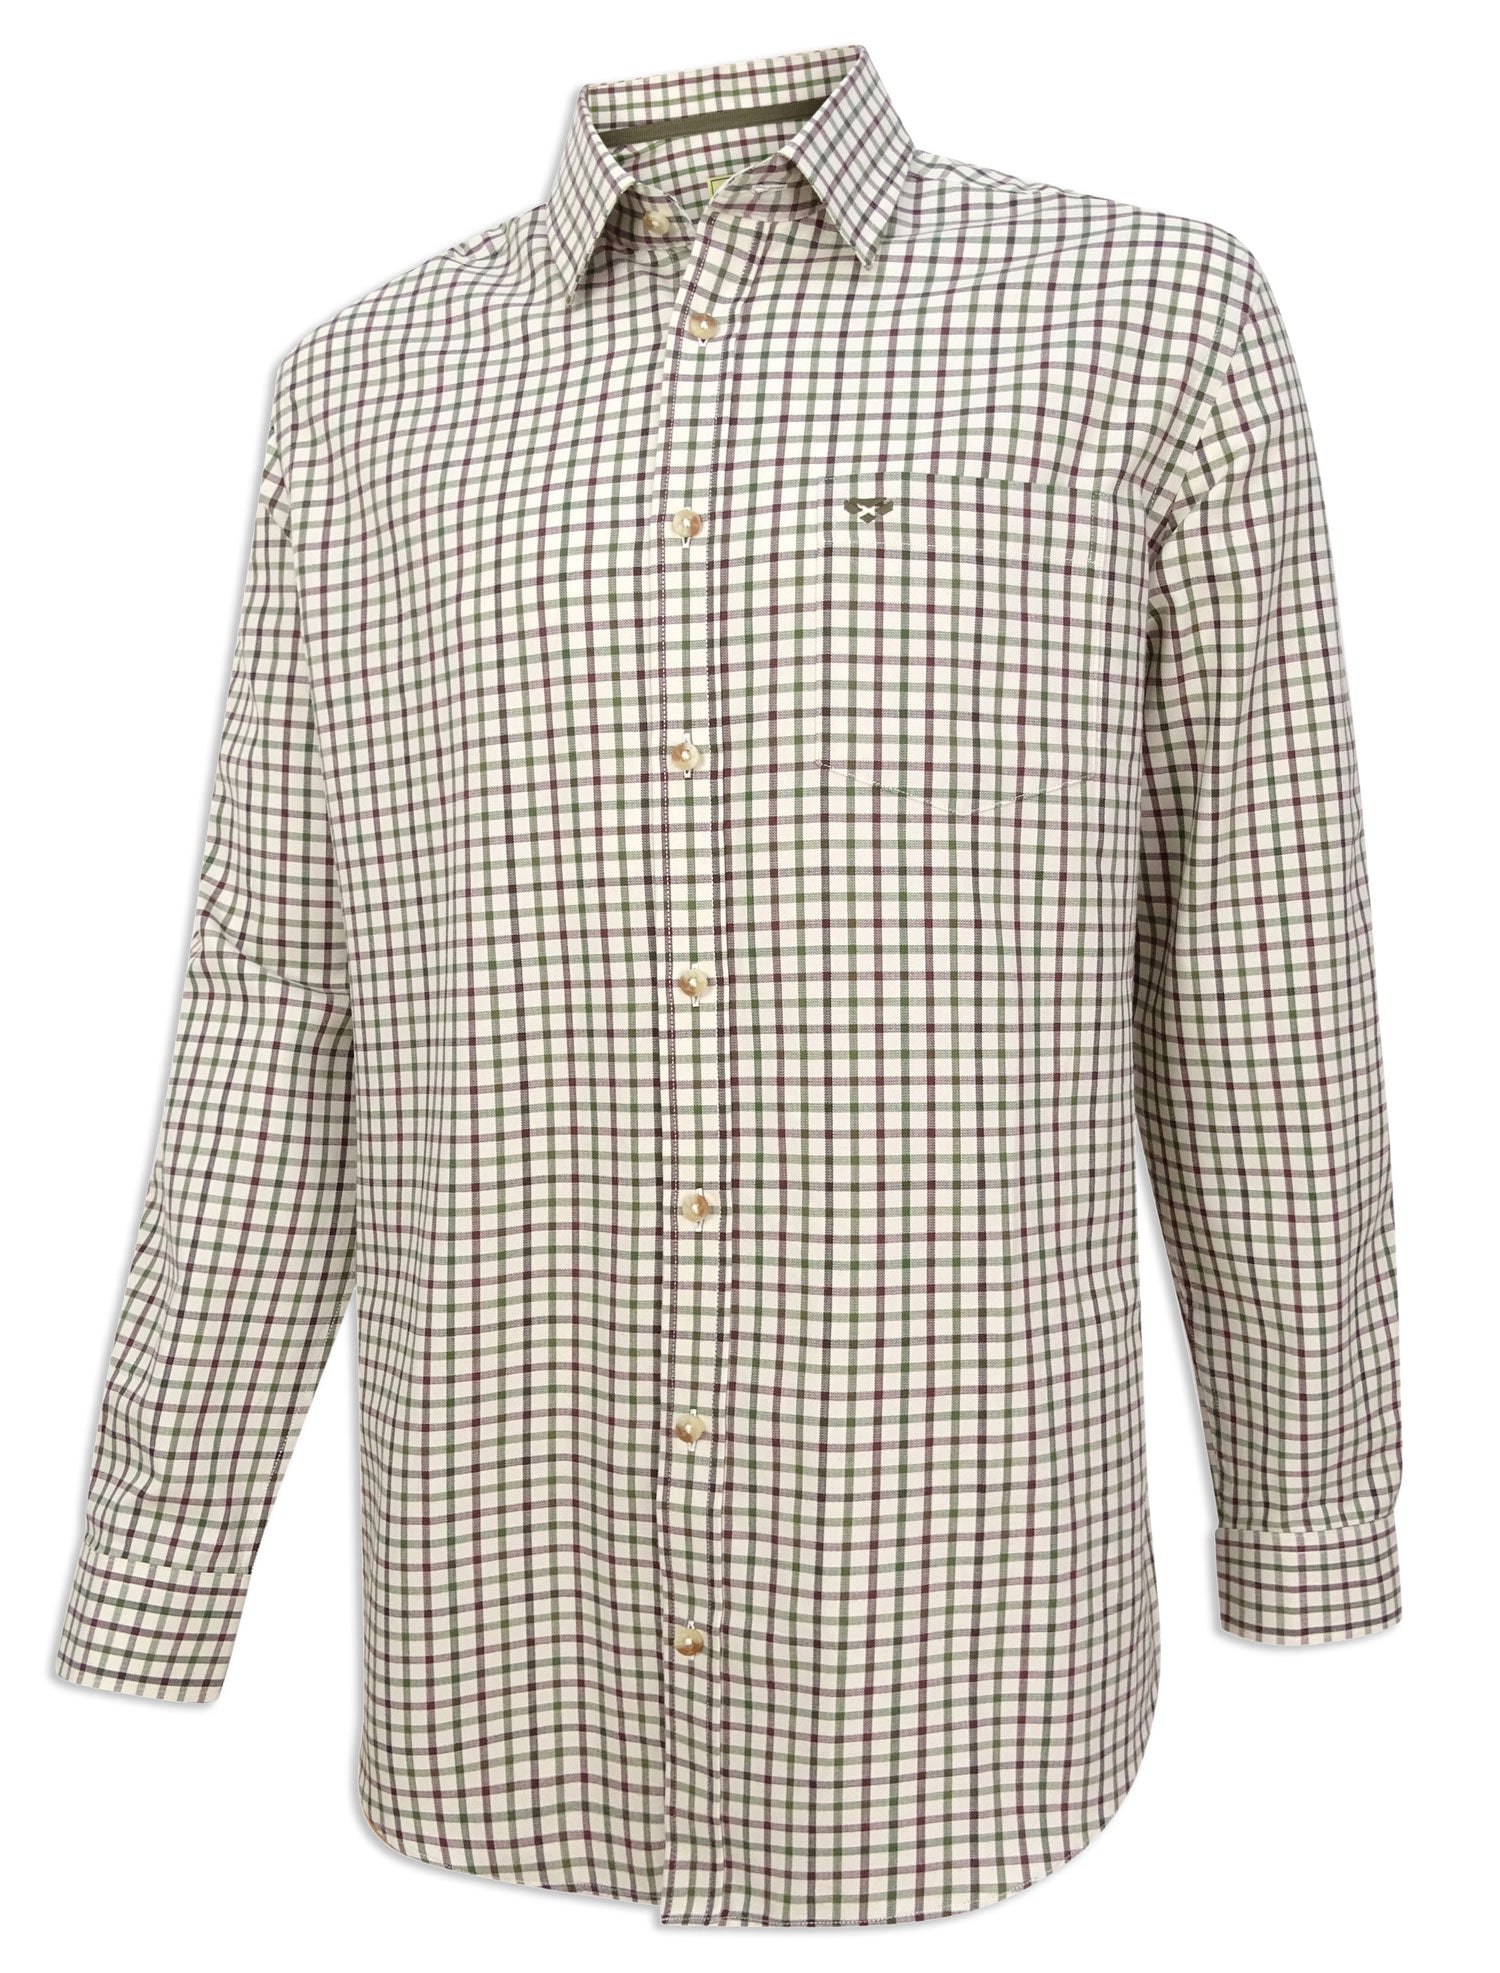 Green Wine Hoggs of Fife Falkland Twill Shirt